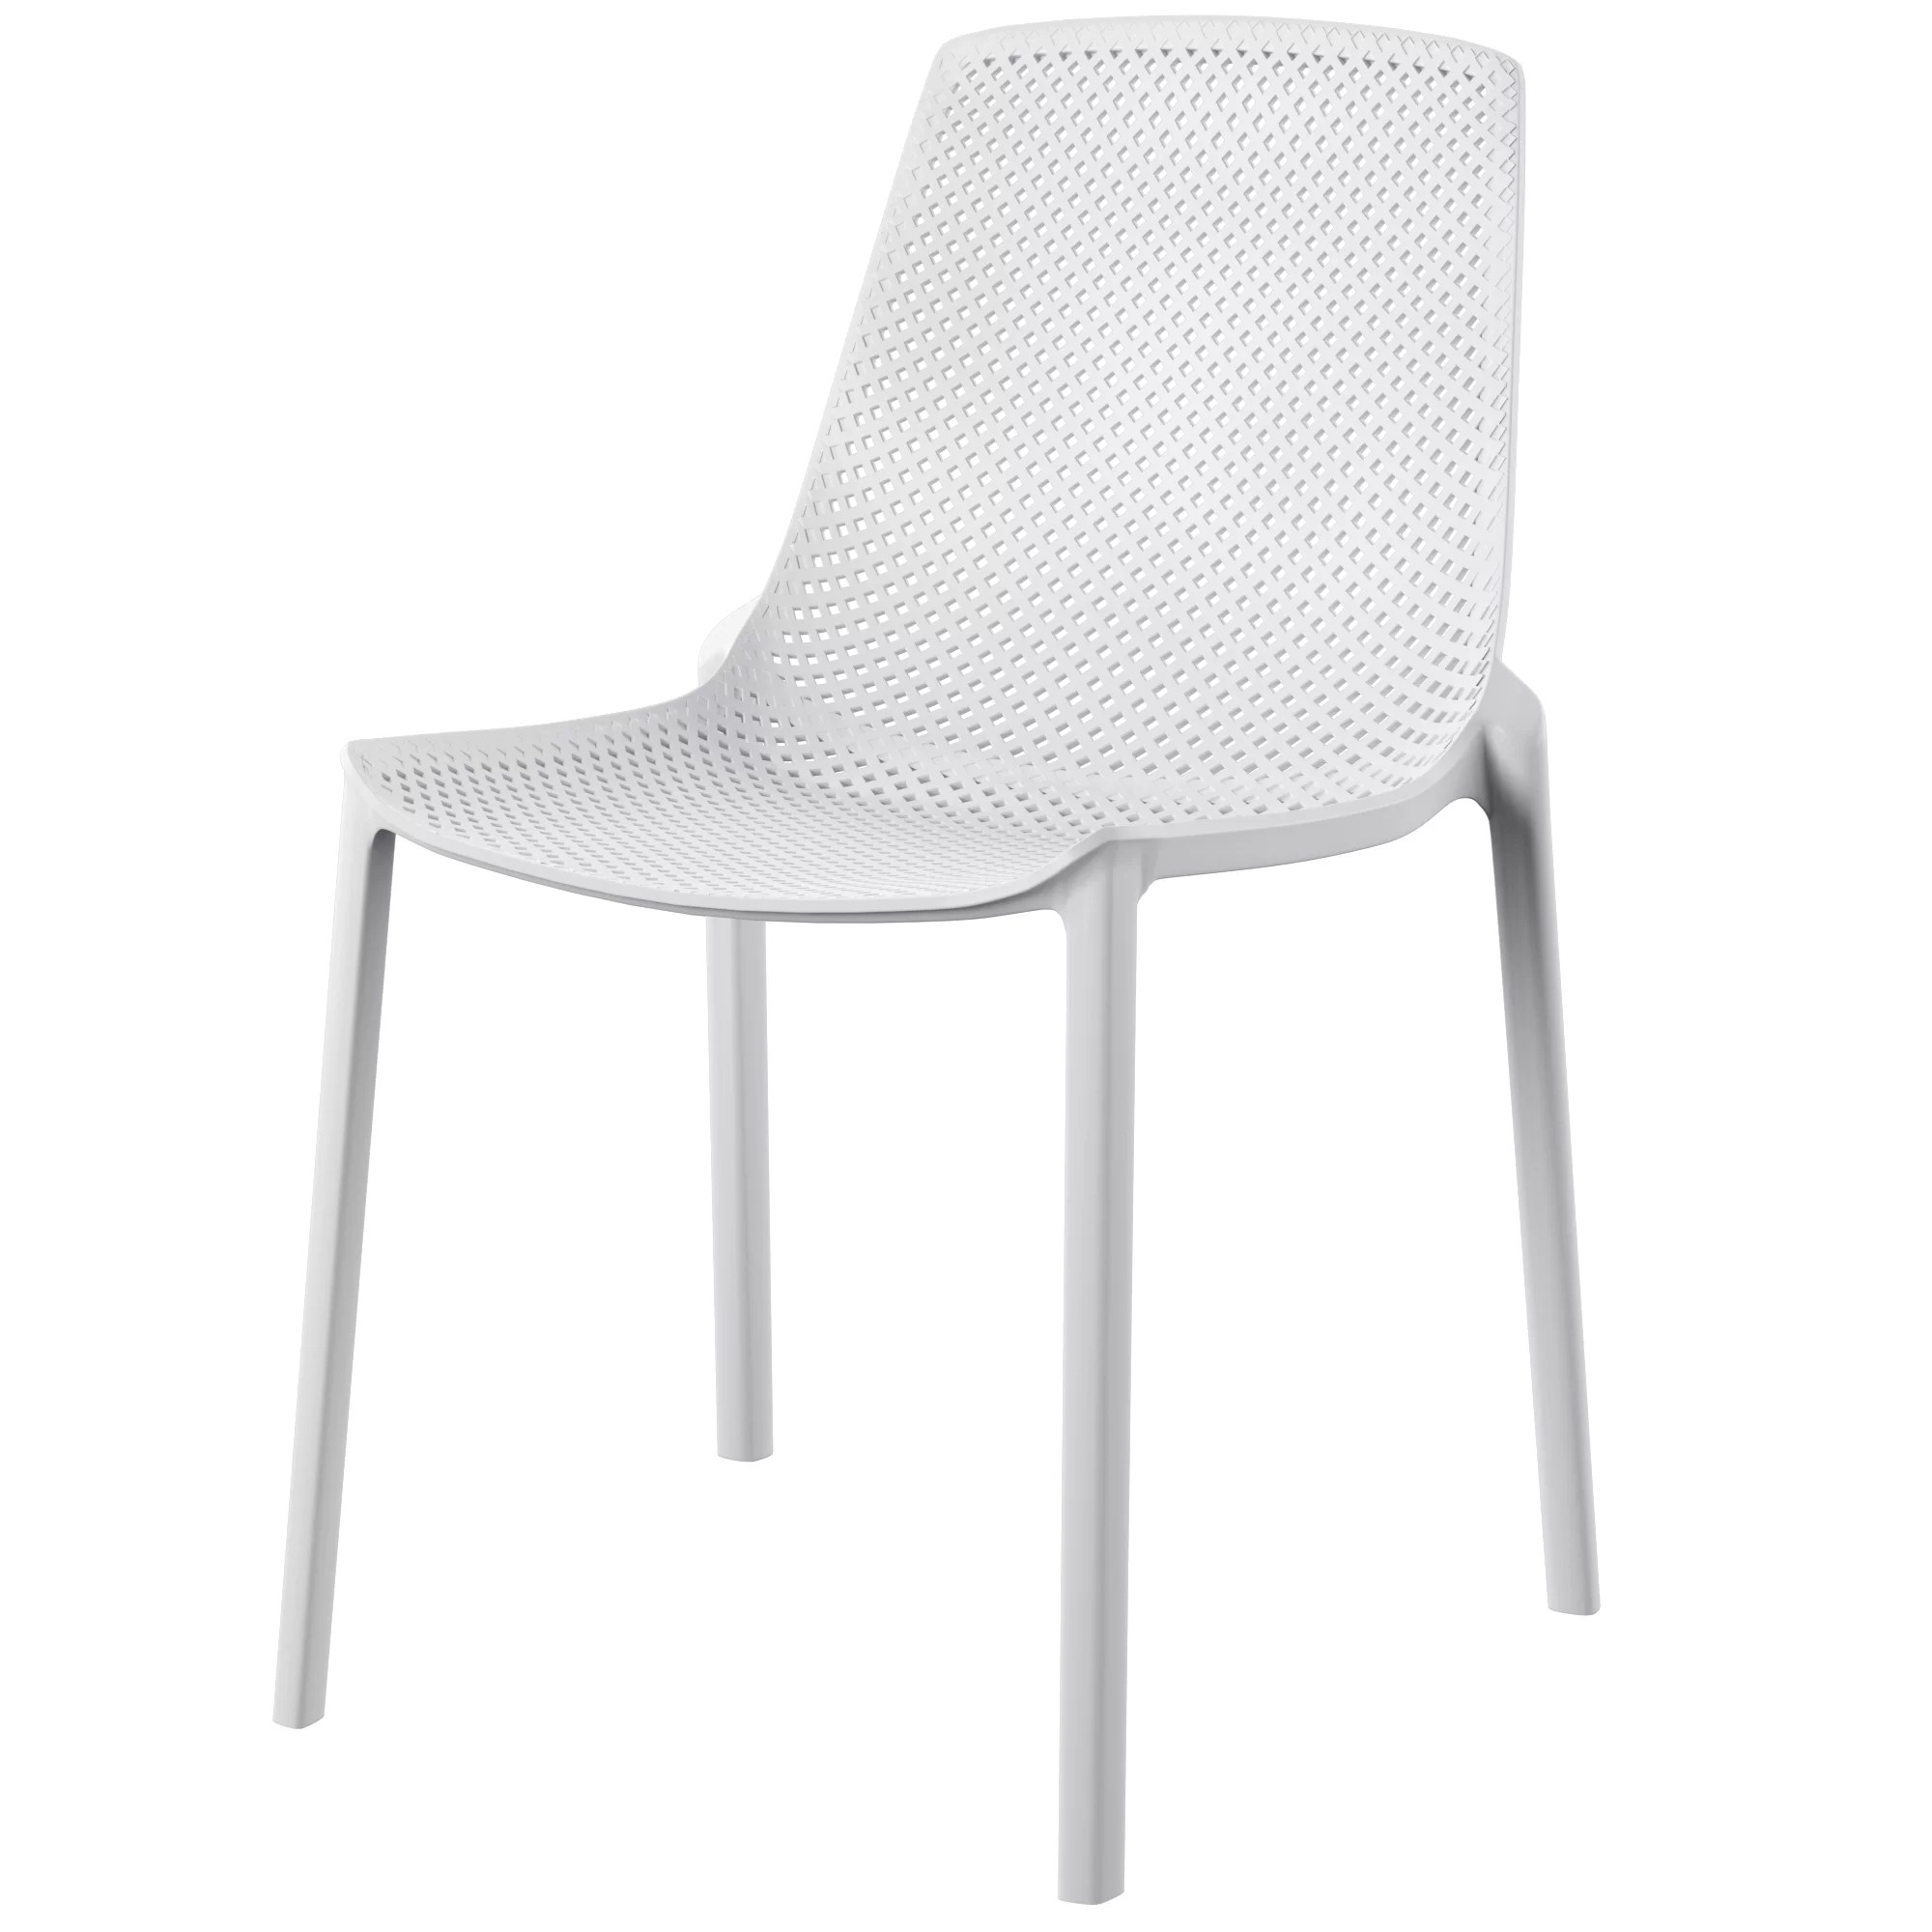 Stacking Dining Chairs Claudio Stacking Patio Dining Chair